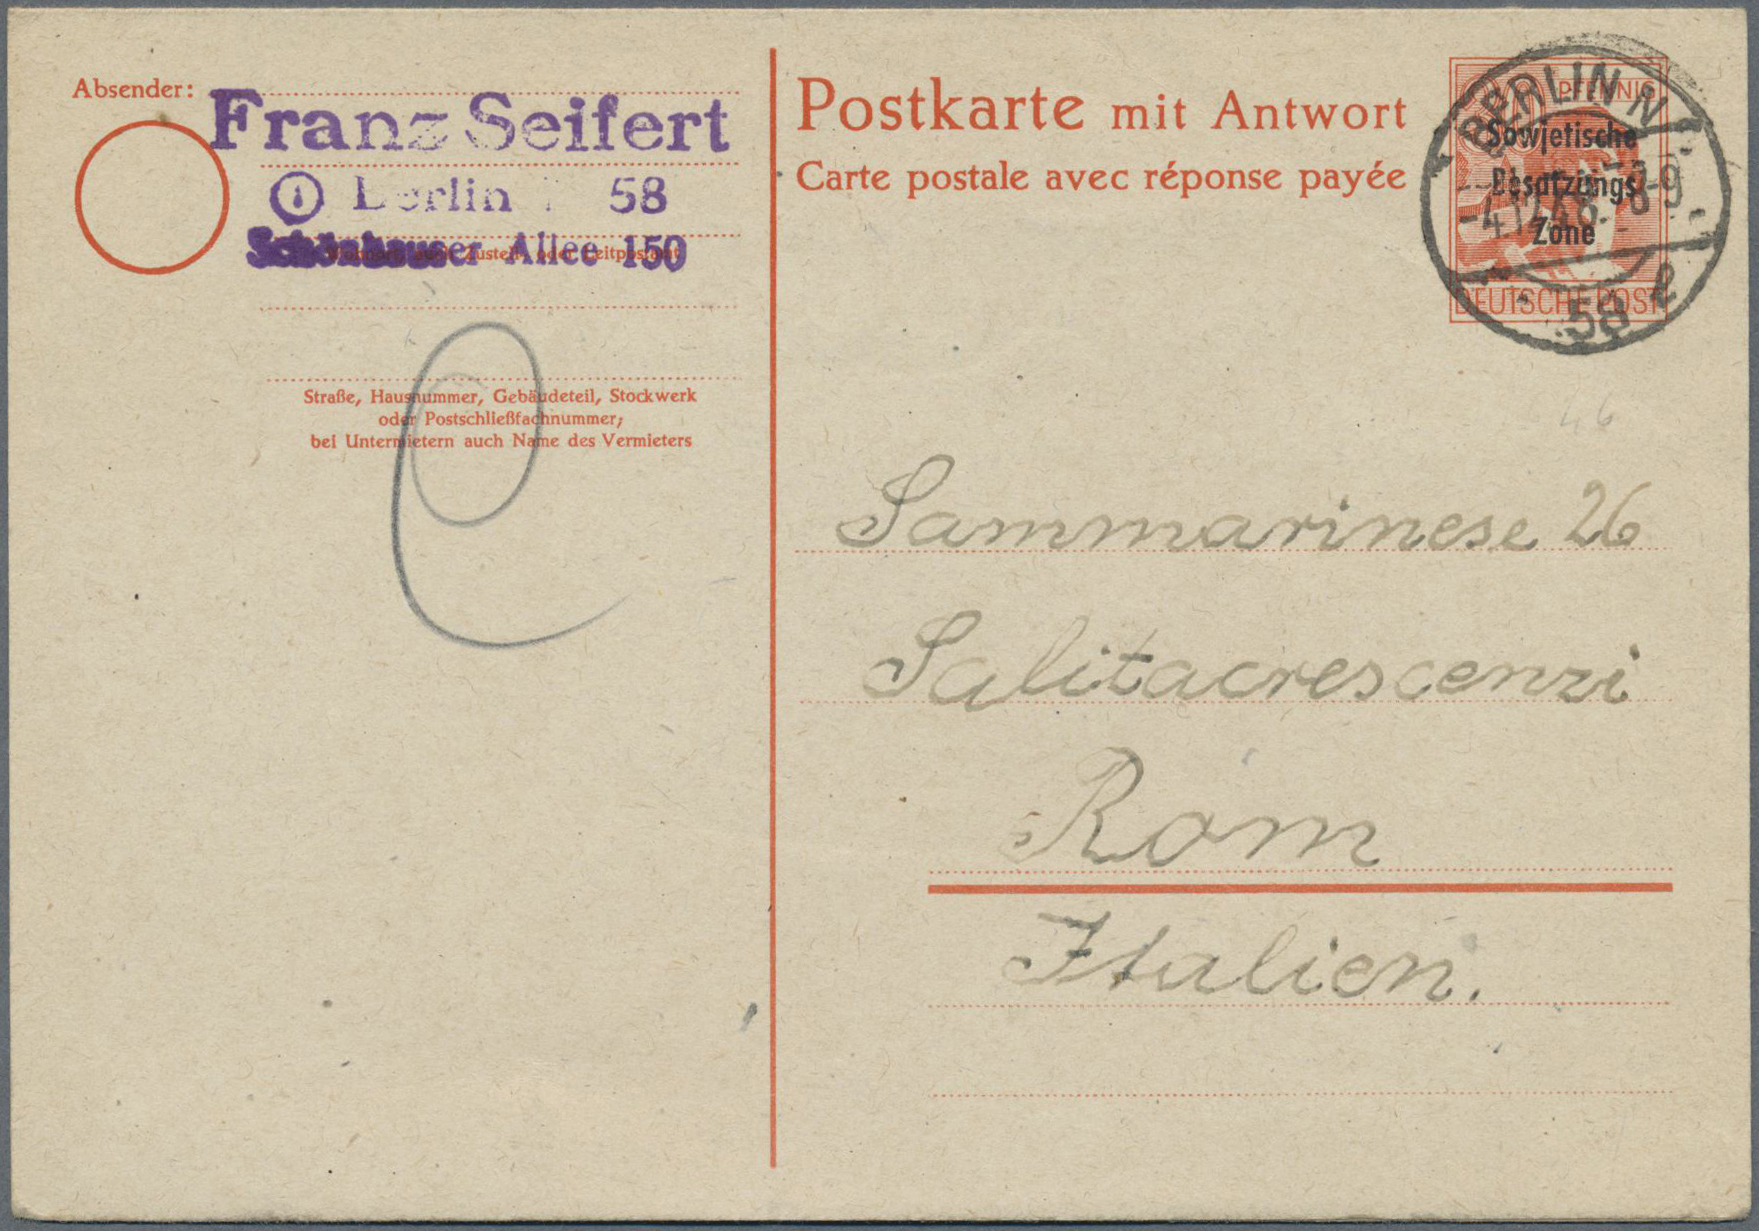 Lot 20174 - Sowjetische Zone - Ganzsachen  -  Auktionshaus Christoph Gärtner GmbH & Co. KG Auction #40 Germany, Picture Post Cards, Collections Overseas, Thematics